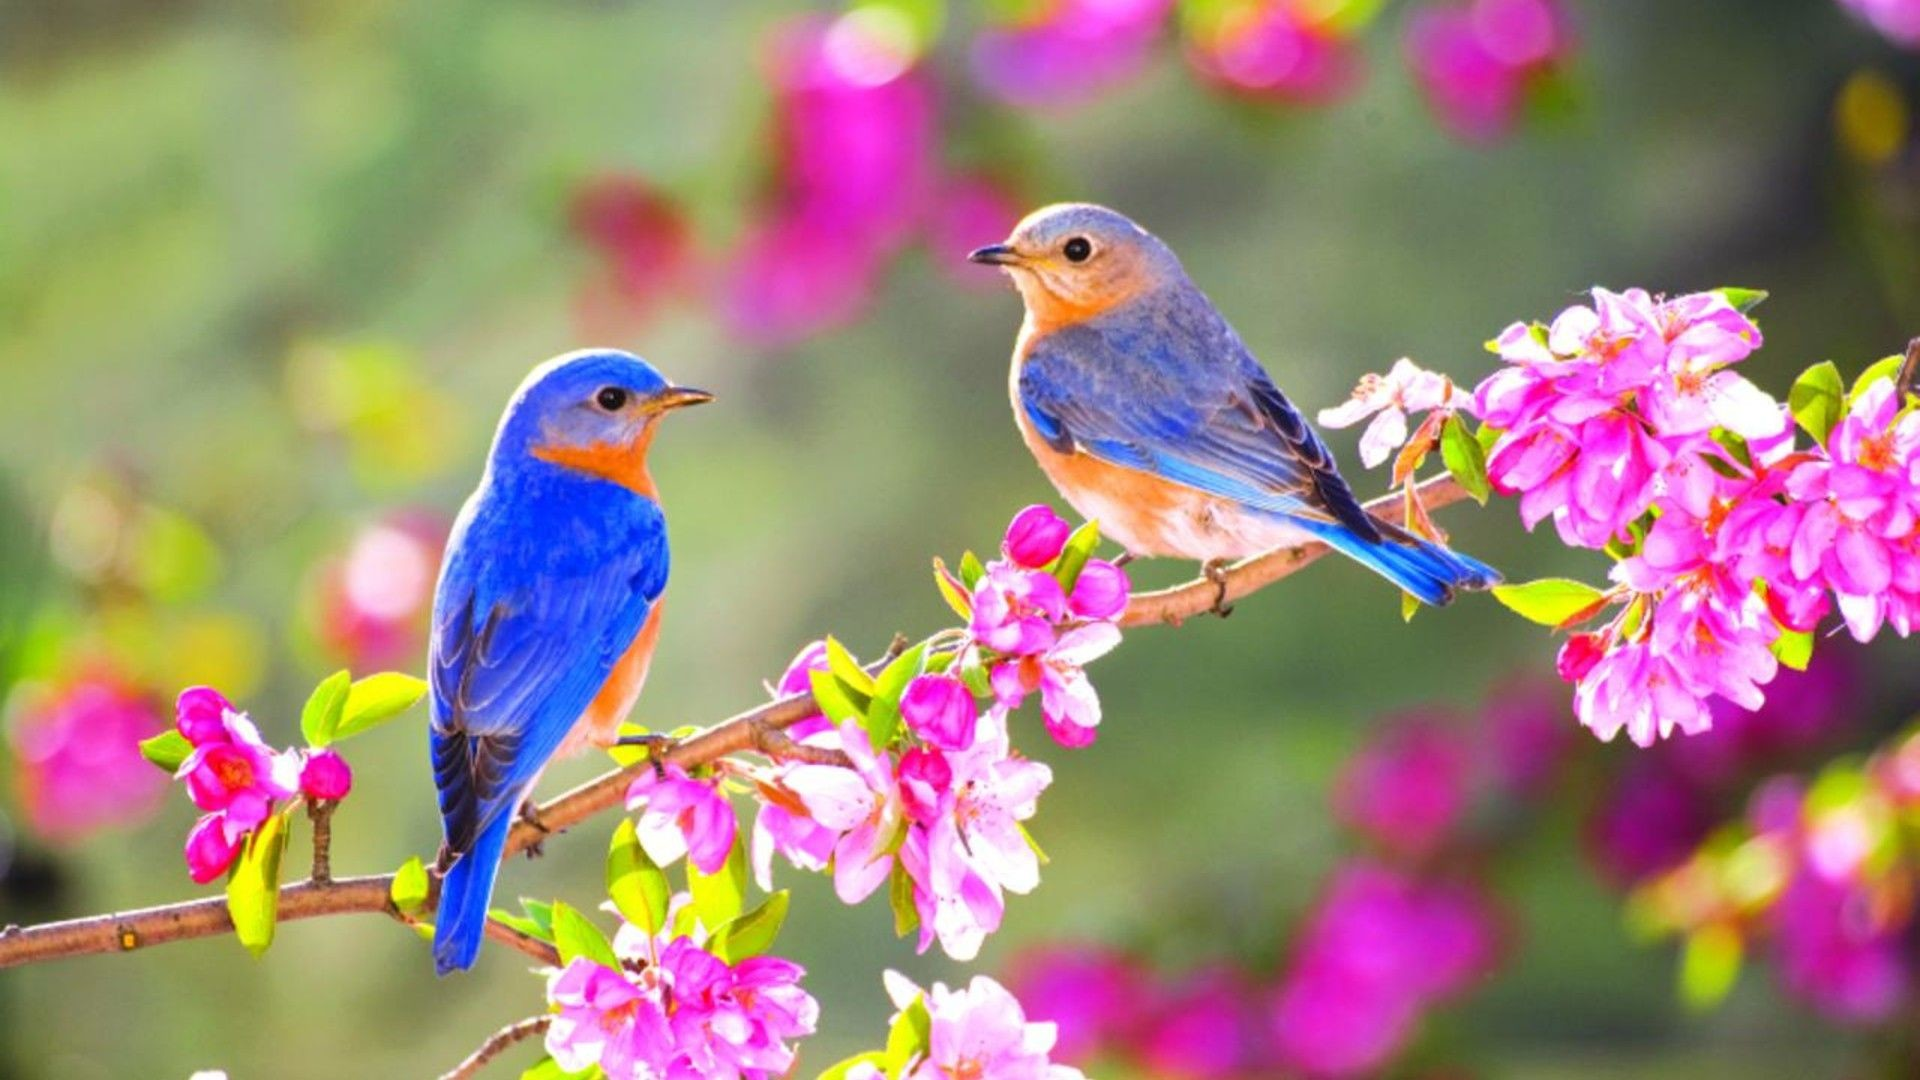 1920x1080 Wallpaper Download  Lovely two little blue birds on a blossom  branch. Animal Wallpapers. HD Wallpaper Download for iPad and iPhone  Widescreen 2160p